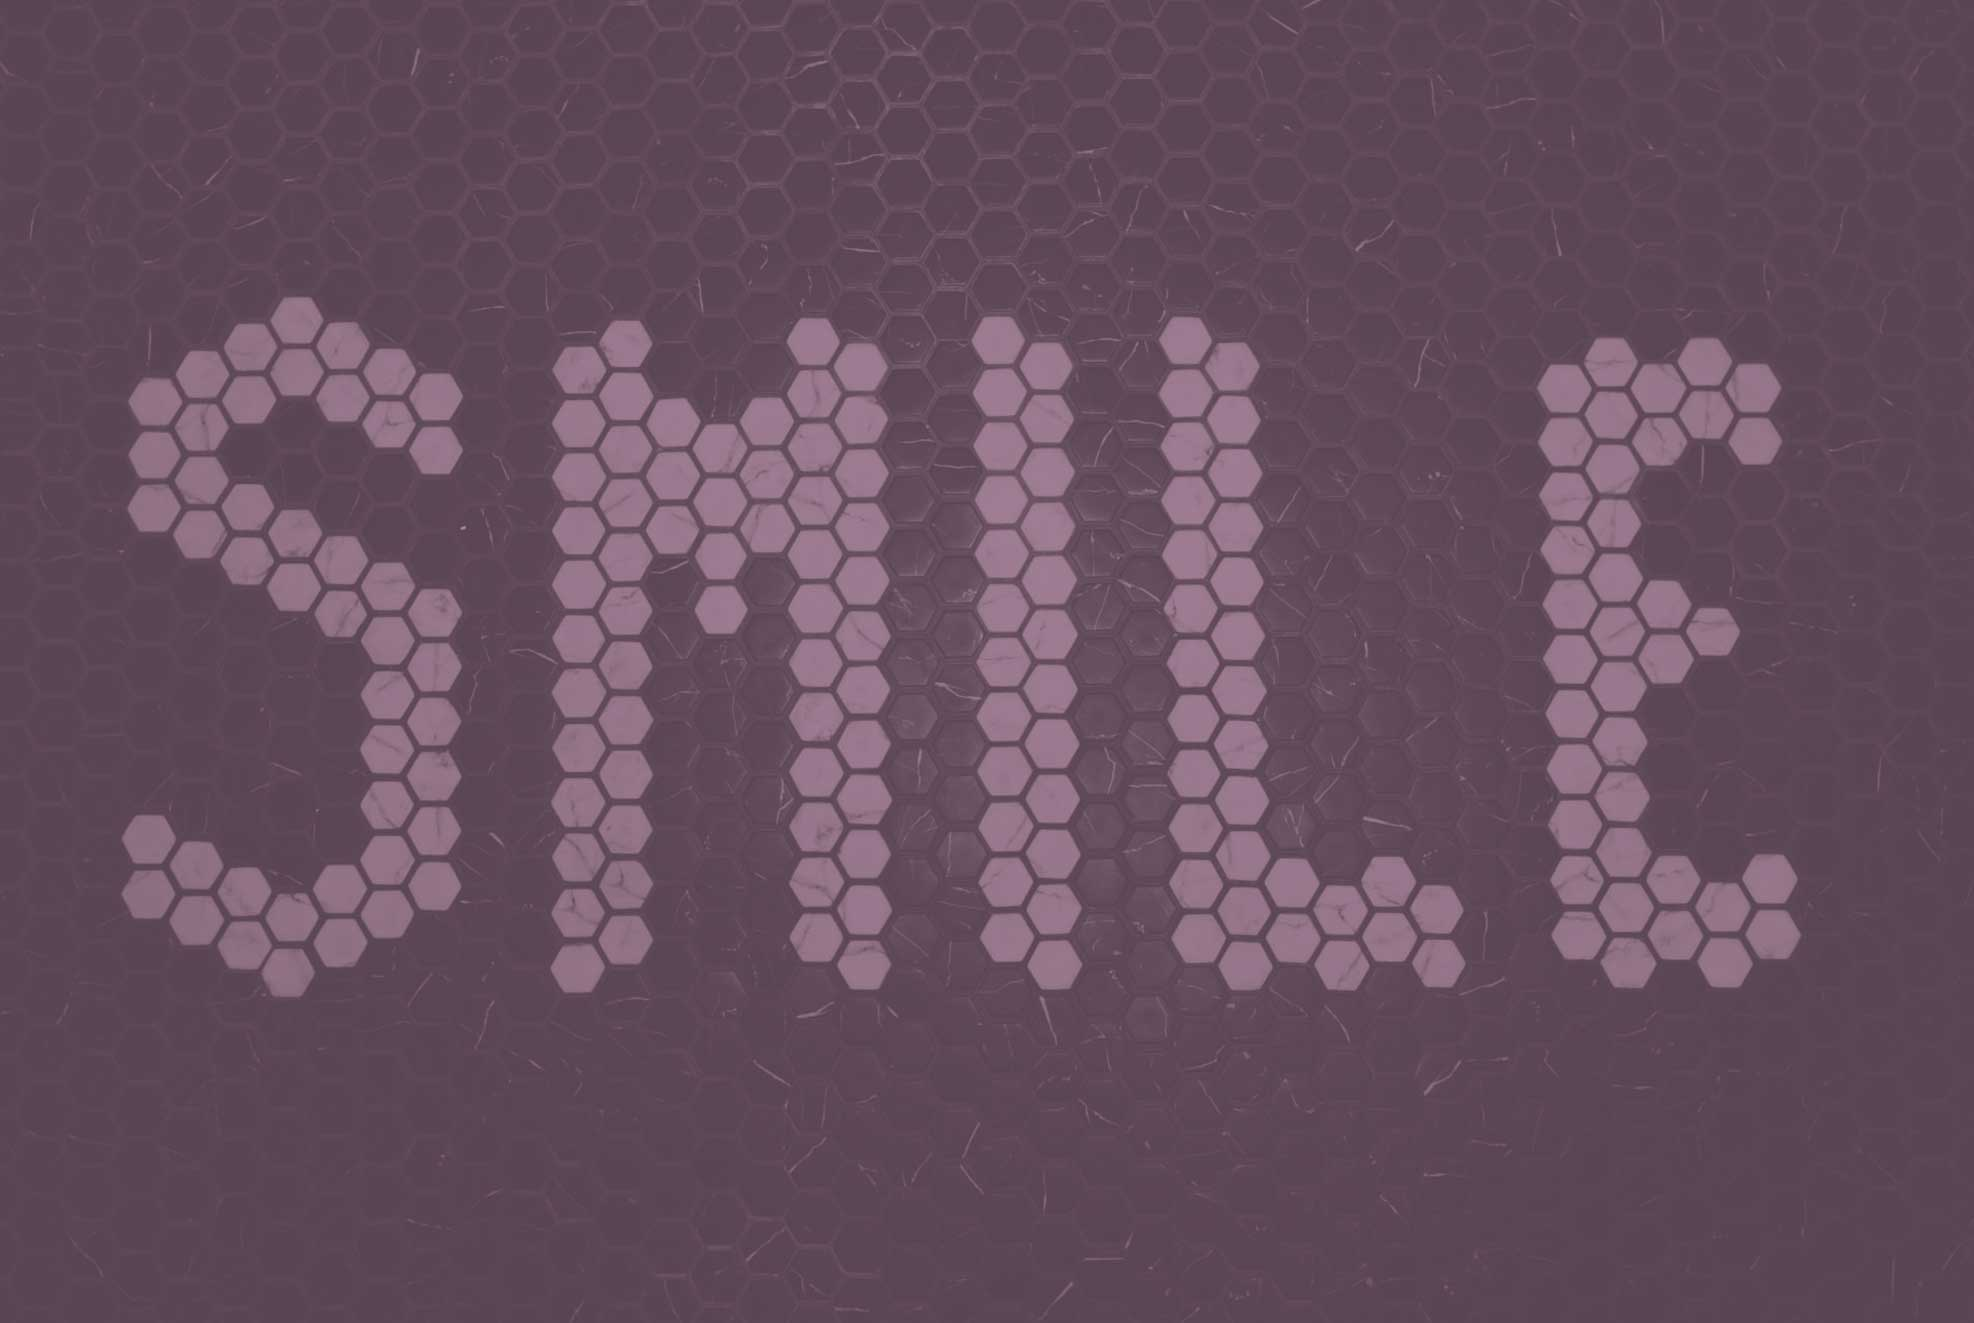 """A photo of a tile floor which spells out the word """"Smile"""""""